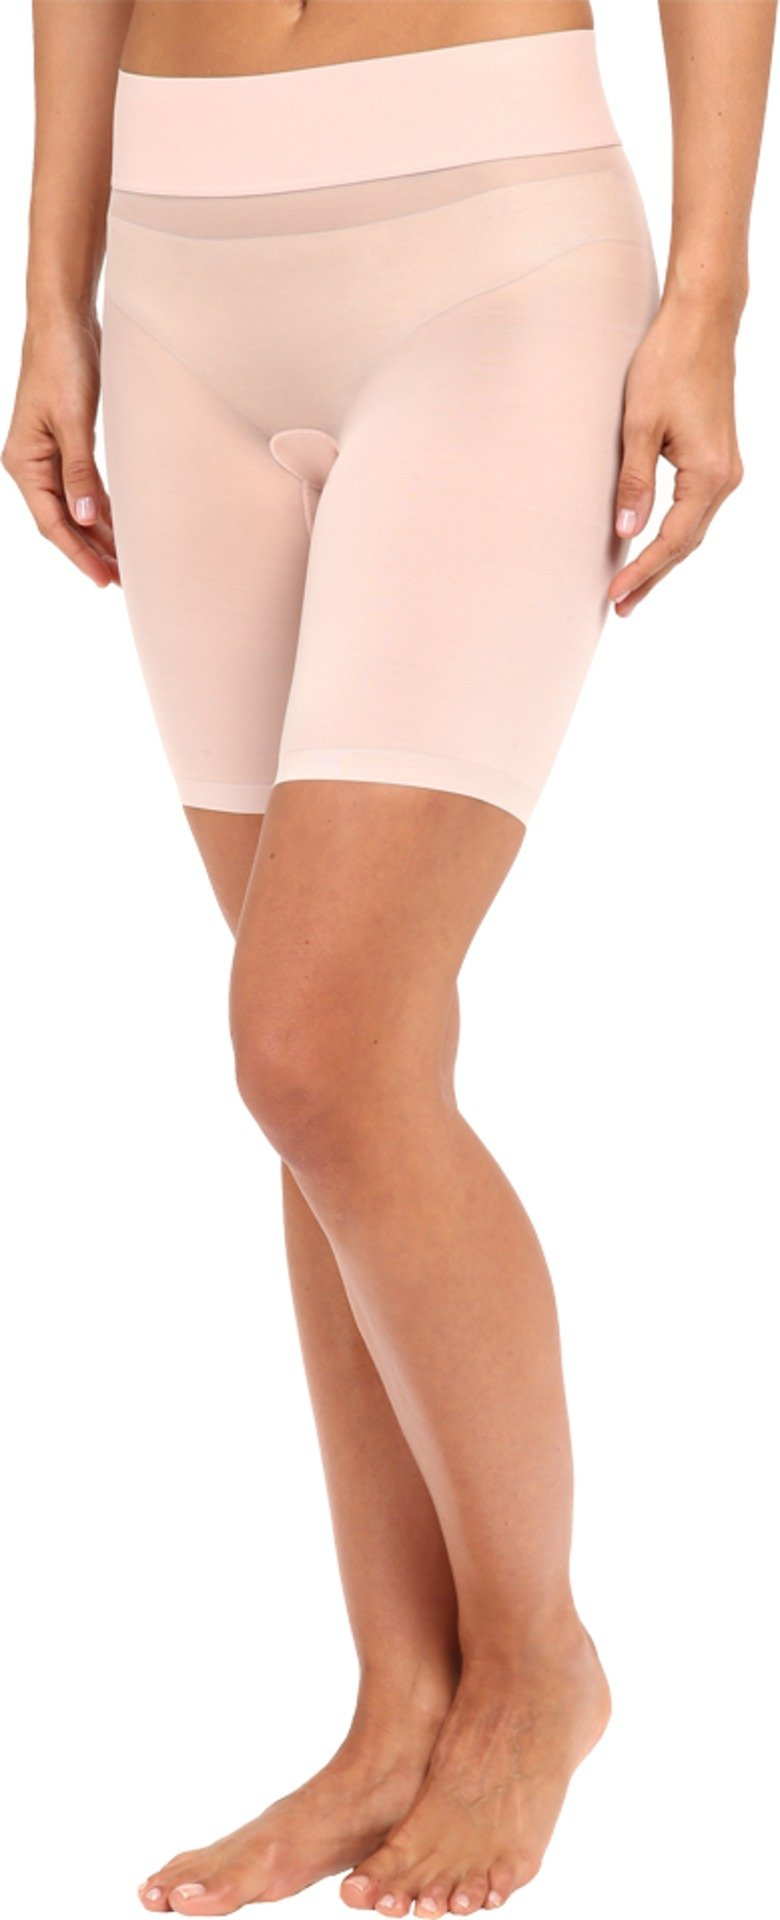 Wolford Women's Sheer Touch Control Shorts Rosepowder 42